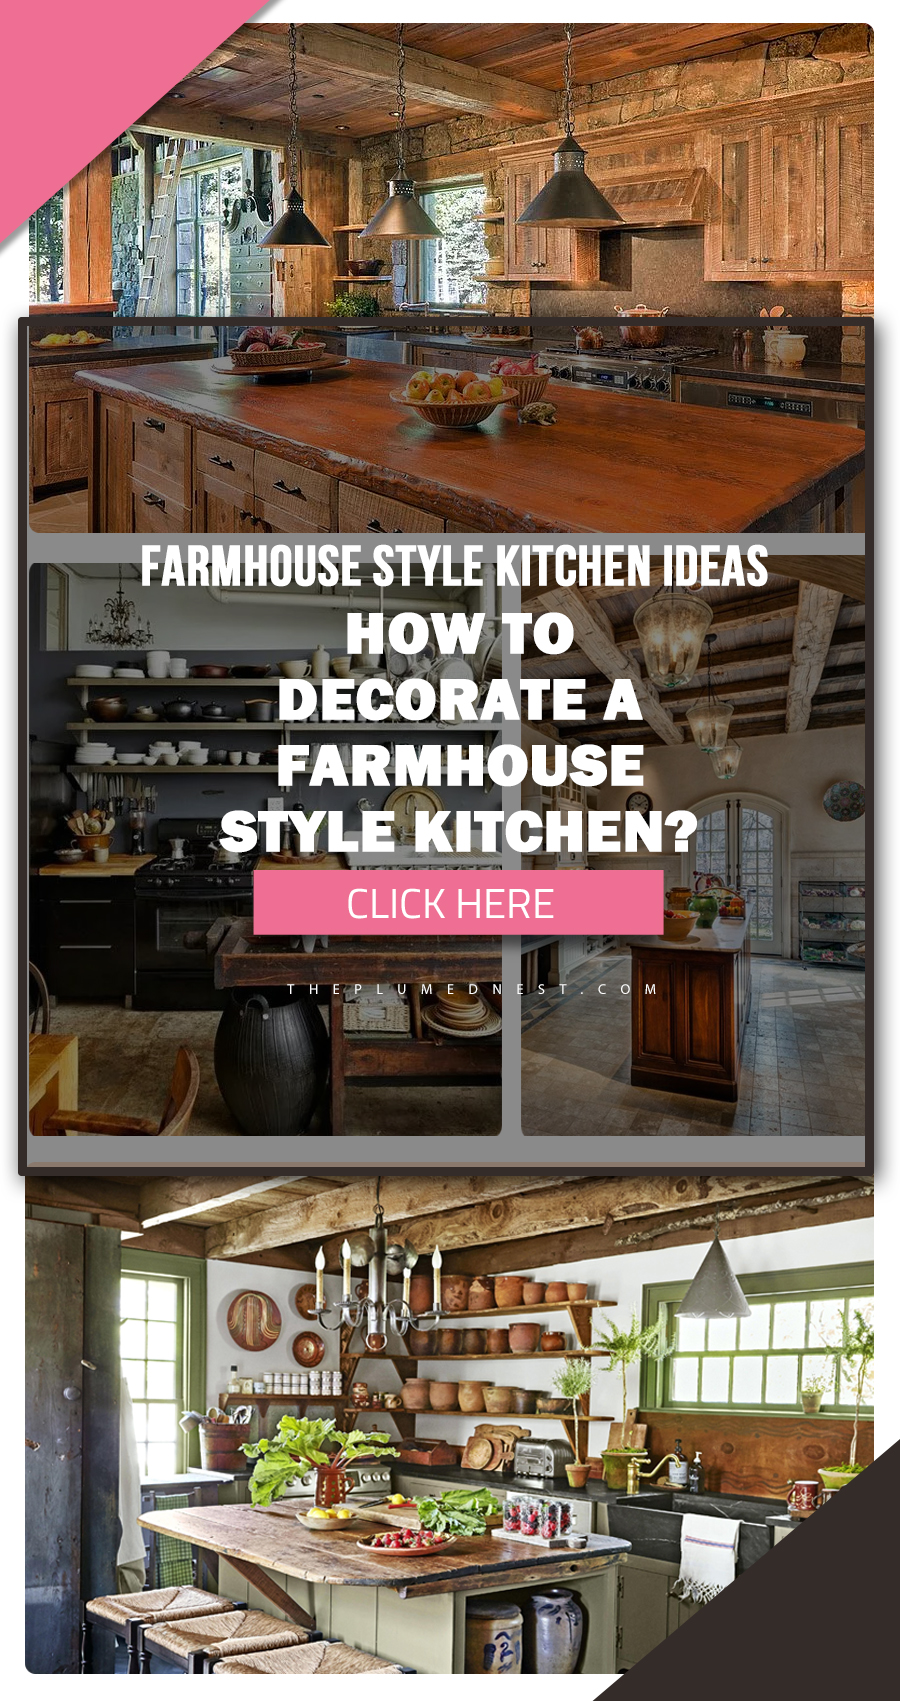 33 + Farmhouse Style Kitchen Ideas, Designs & How to Decorate